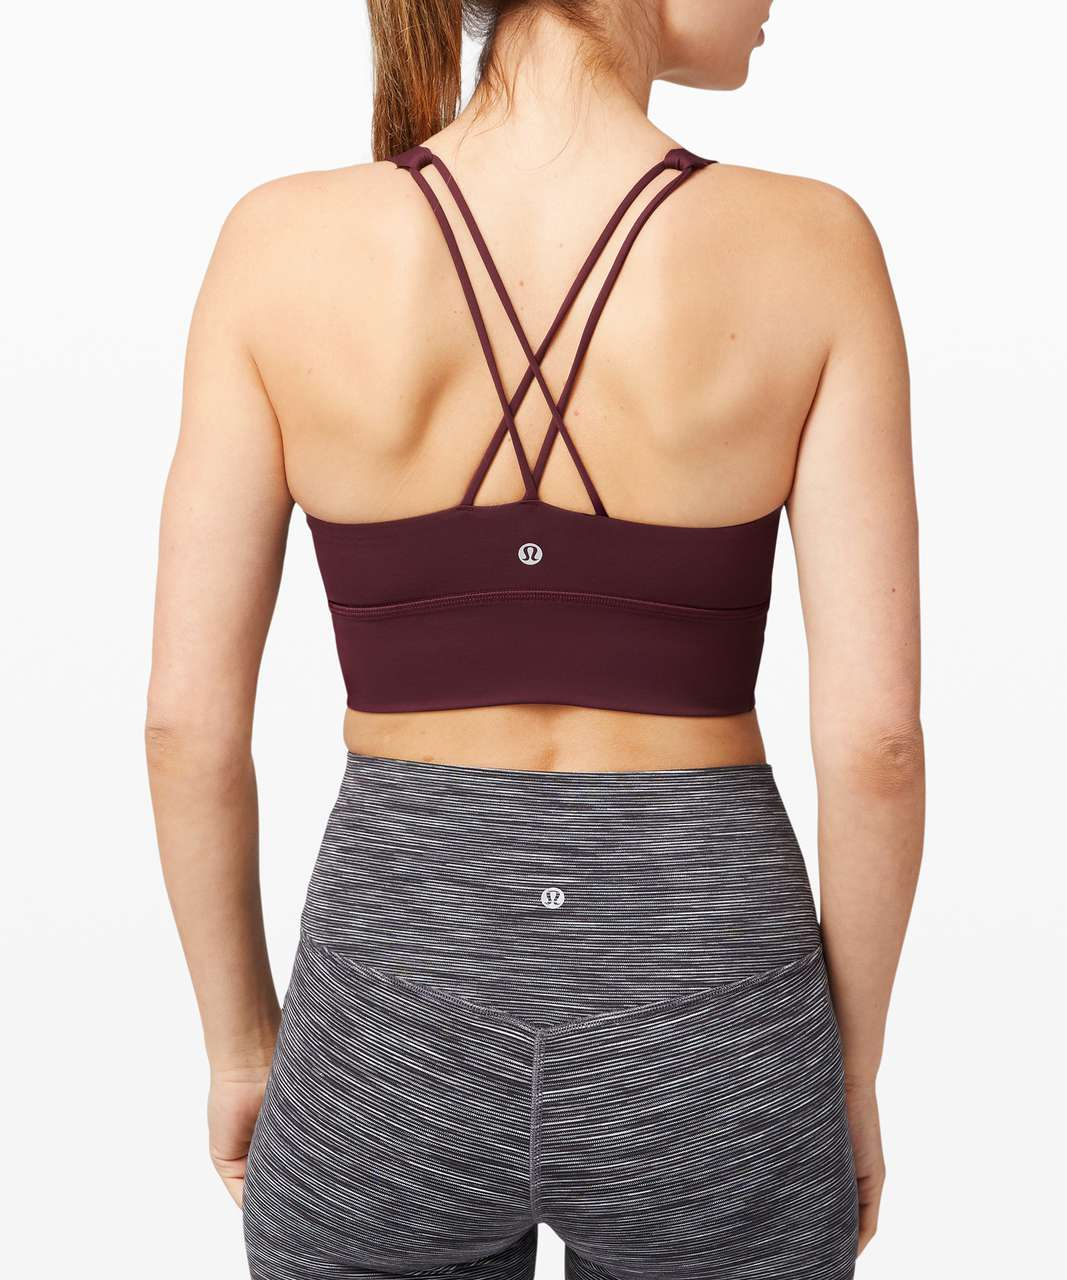 Lululemon Free To Be Bra Long Line *Light Support, A/B Cup (Online Only) - Cassis